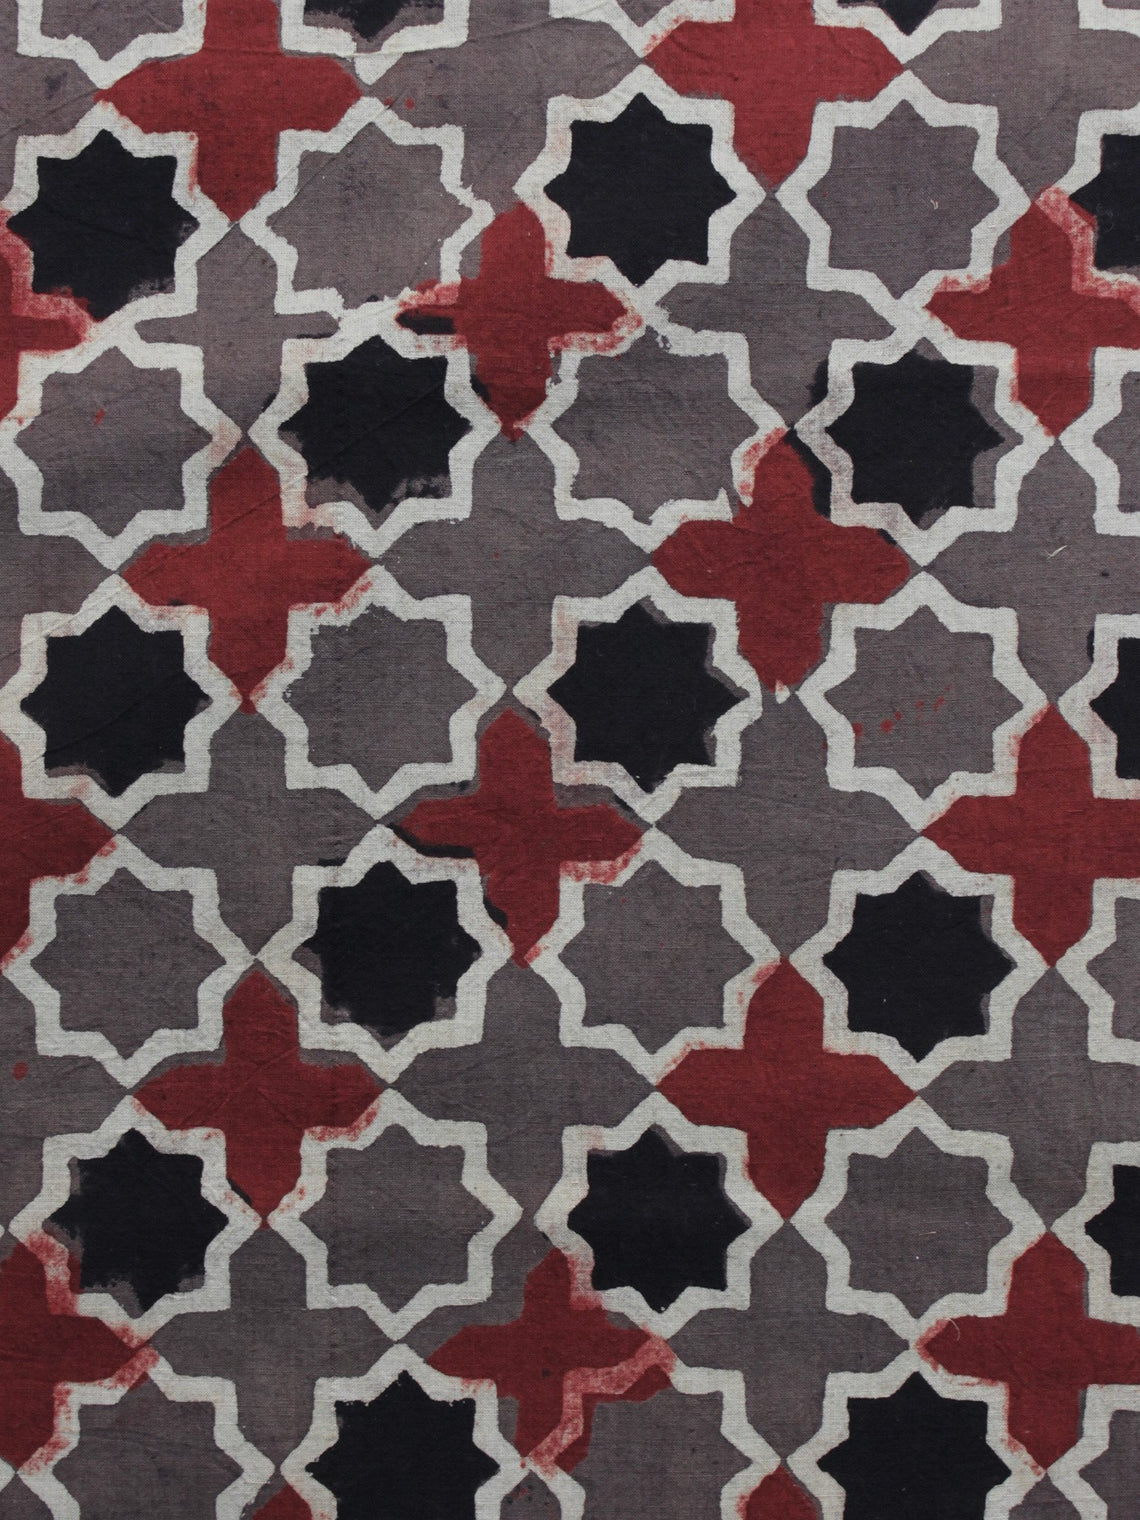 Brown Red Black Ajrakh Printed Cotton Fabric Per Meter - F003F1165